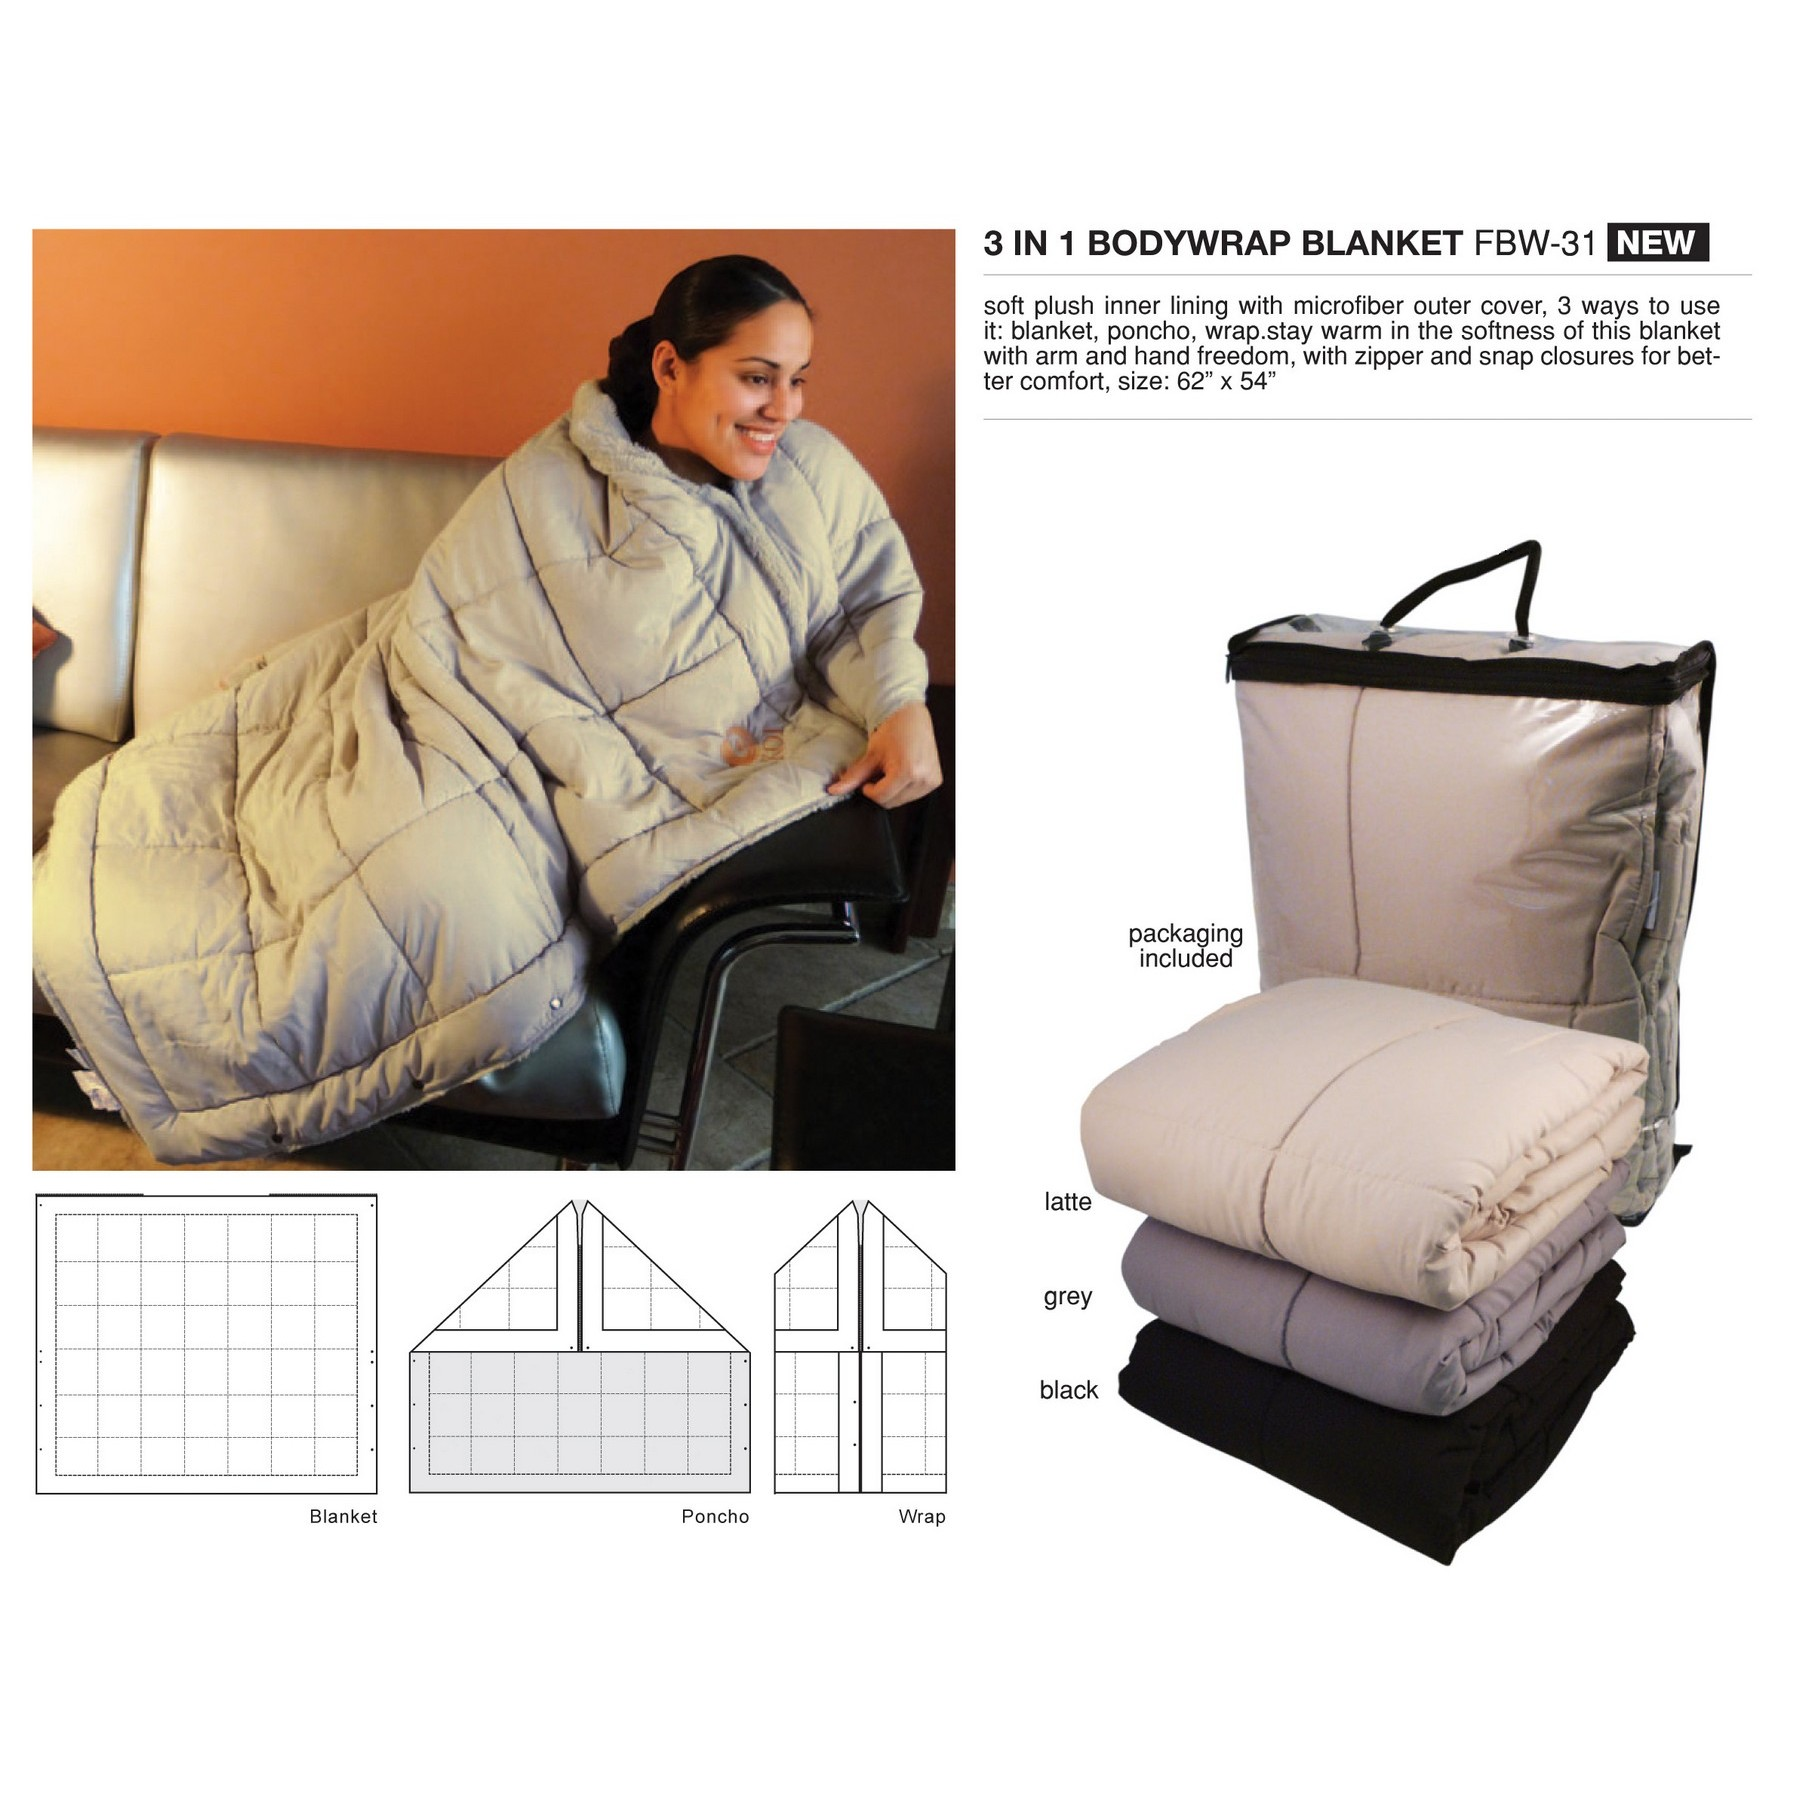 3 In 1 Bodywrap Blanket